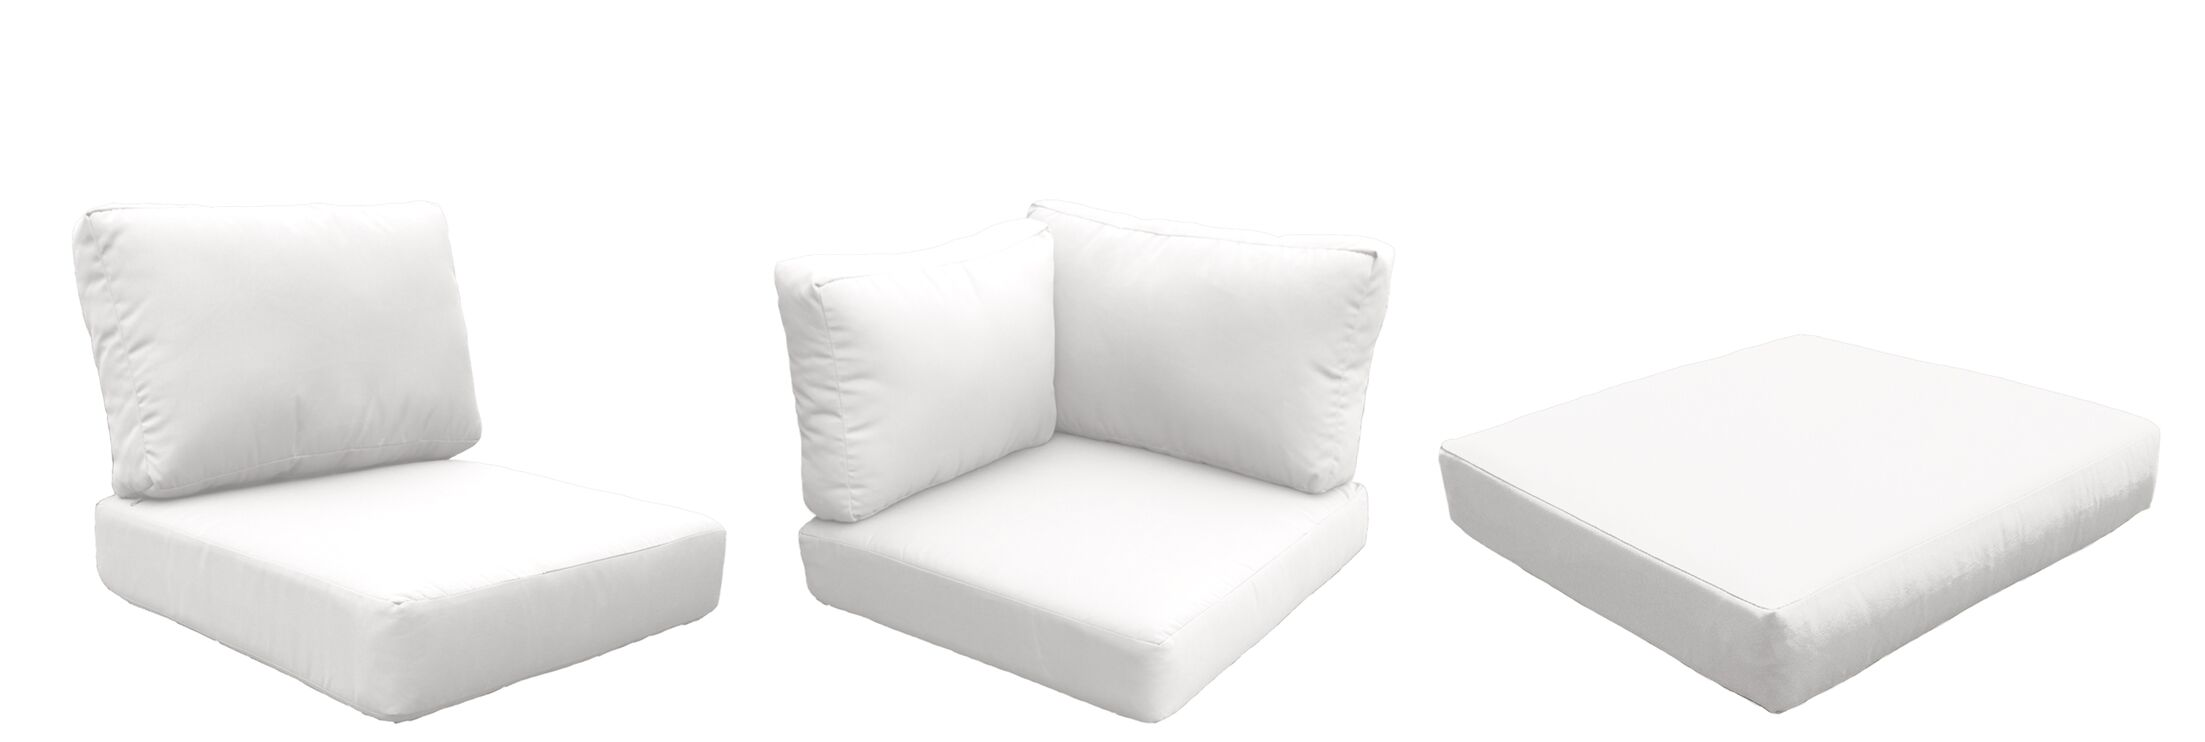 Eldredge Outdoor 18 Piece Lounge Chair Cushion Set Fabric: White